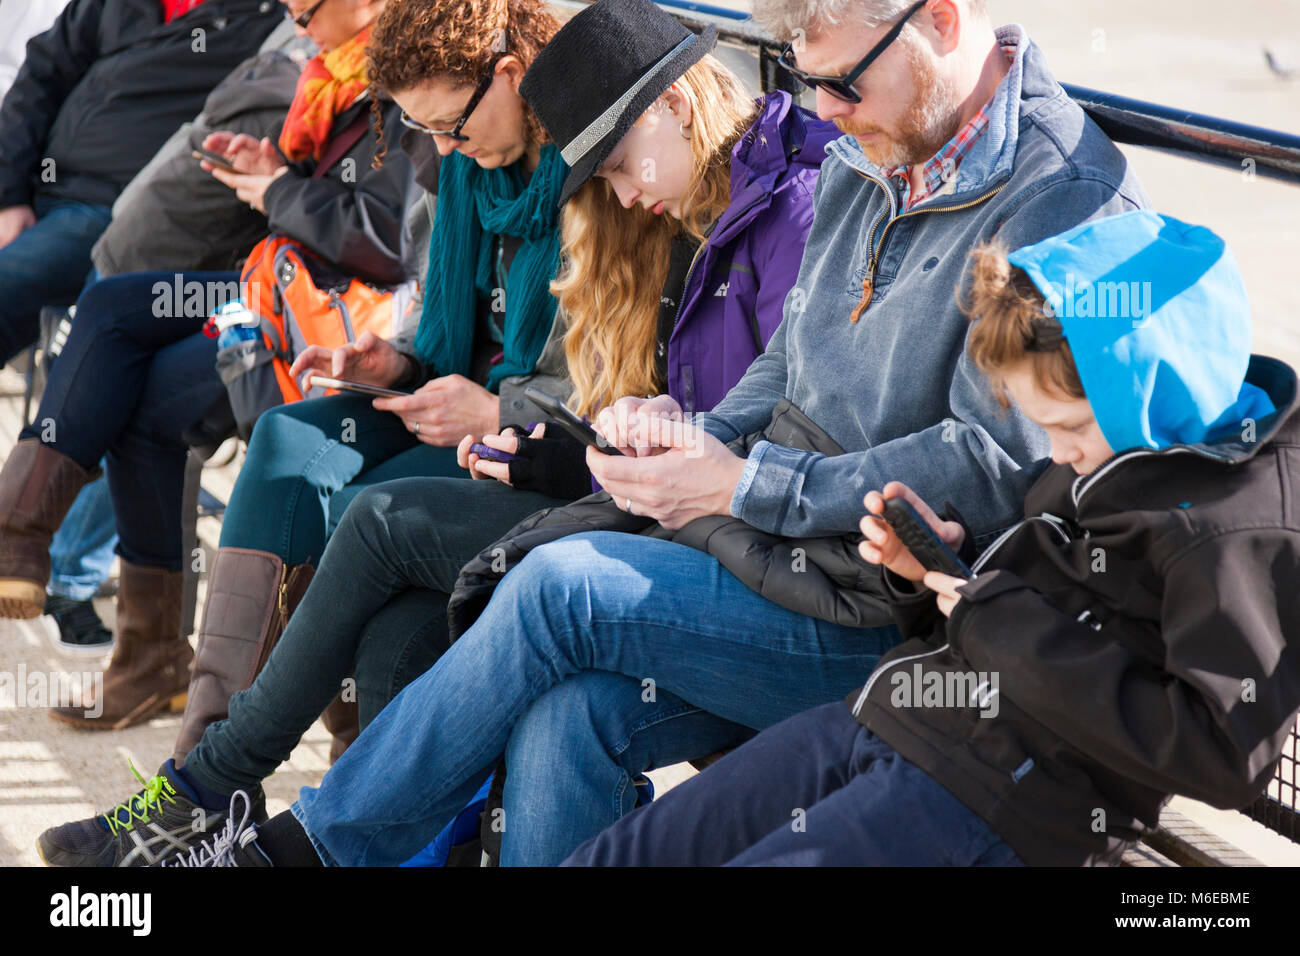 Family sitting on a bench, all of whom are simultaneously looking at their mobile phone / device / devices, texting - Stock Image